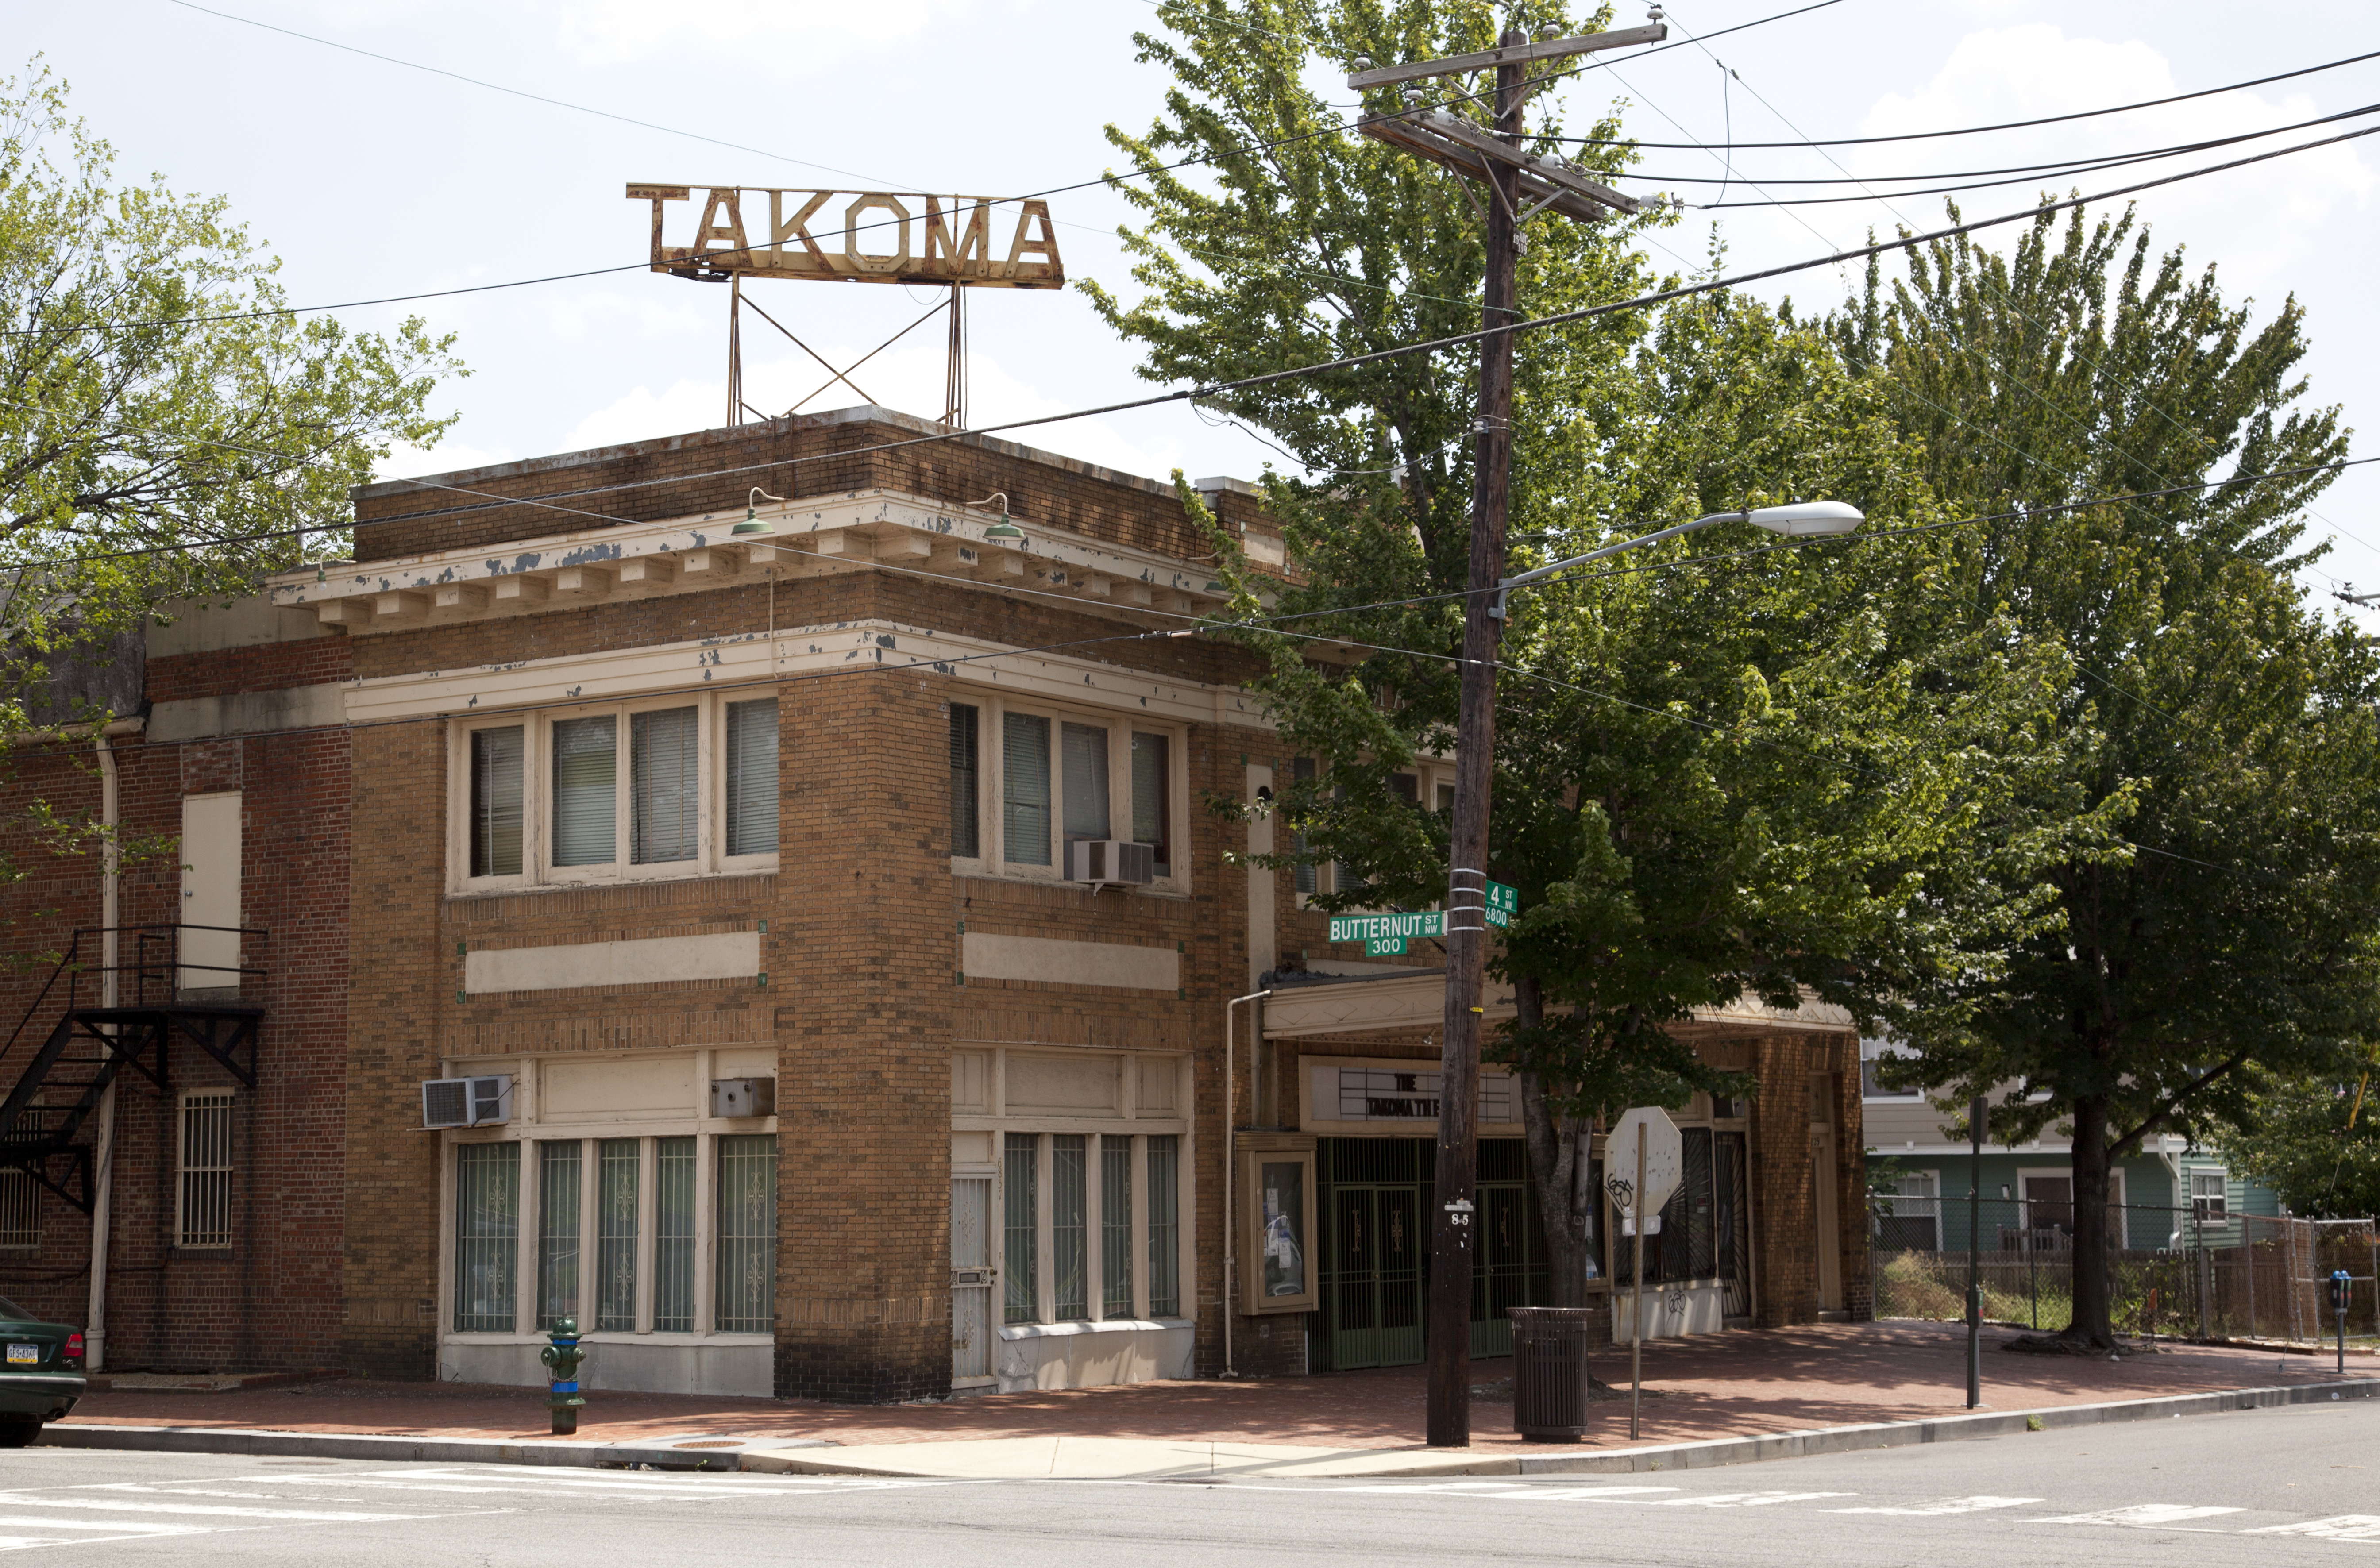 The old Takoma Theatre at the intersection of 4th and Butternut streets NW, a two-story brick building.